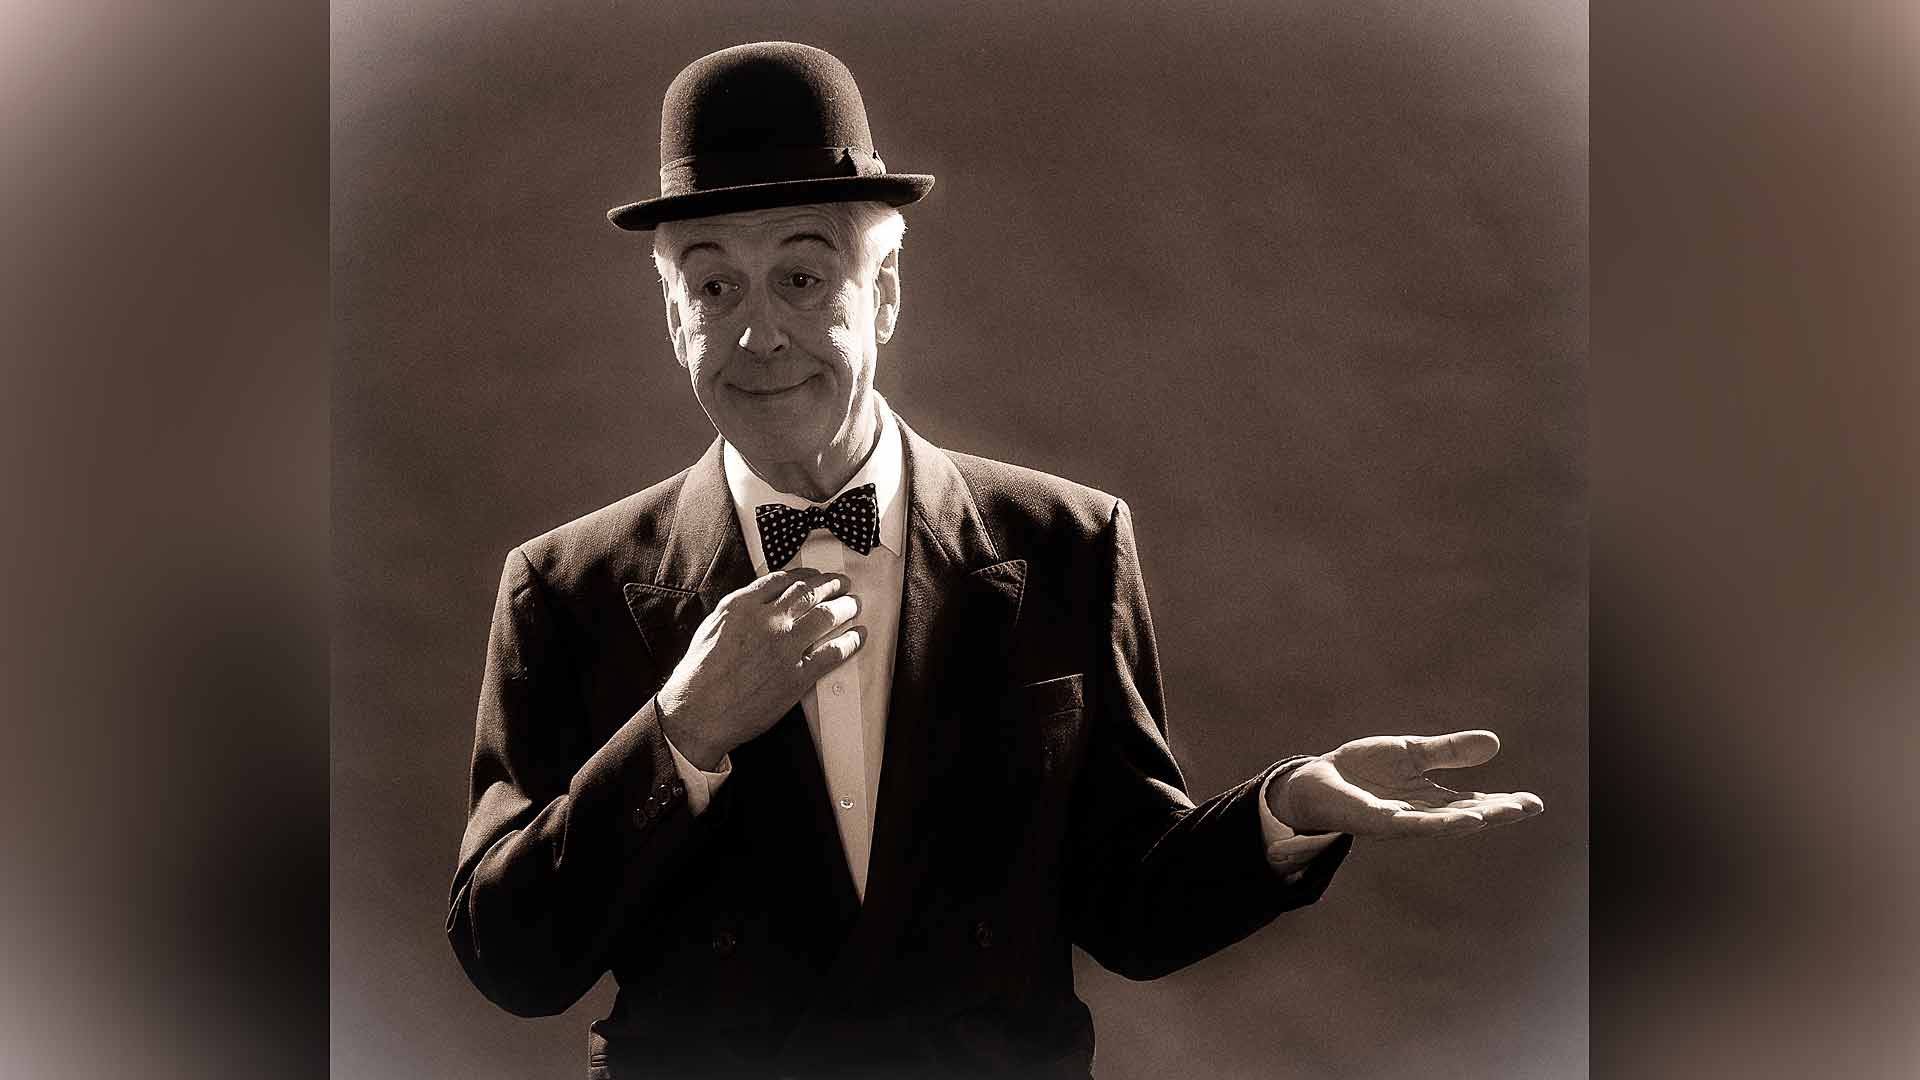 And this is my friend Mr Laurel publicity picture